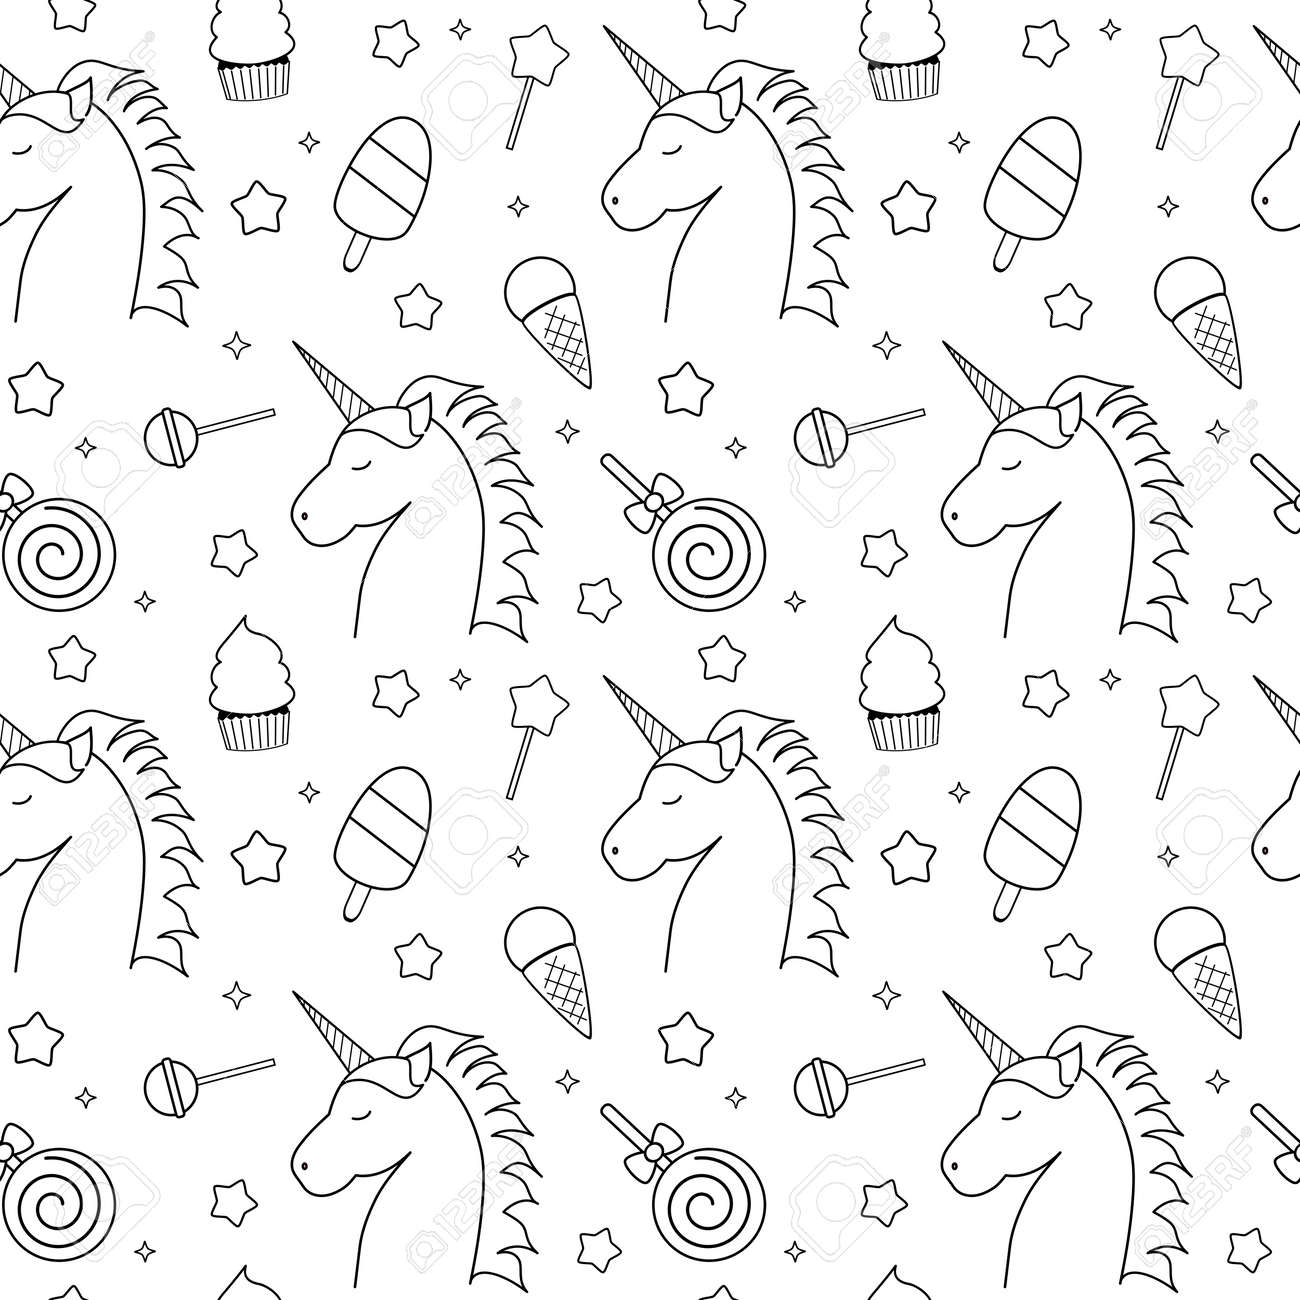 Cute Black And White Seamless Vector Pattern Illustration With